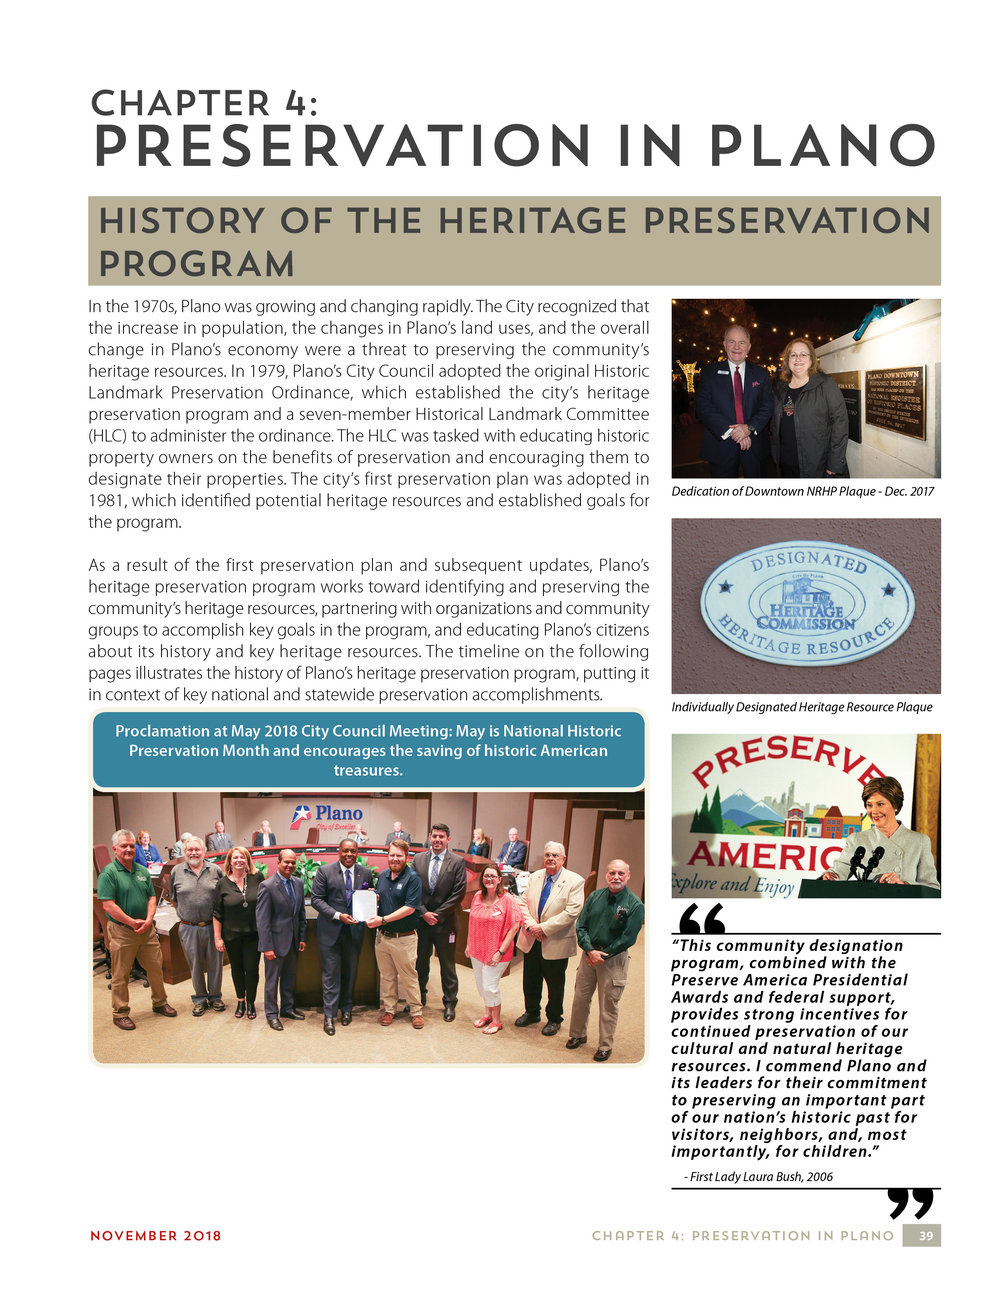 04 - Preservation in Plano